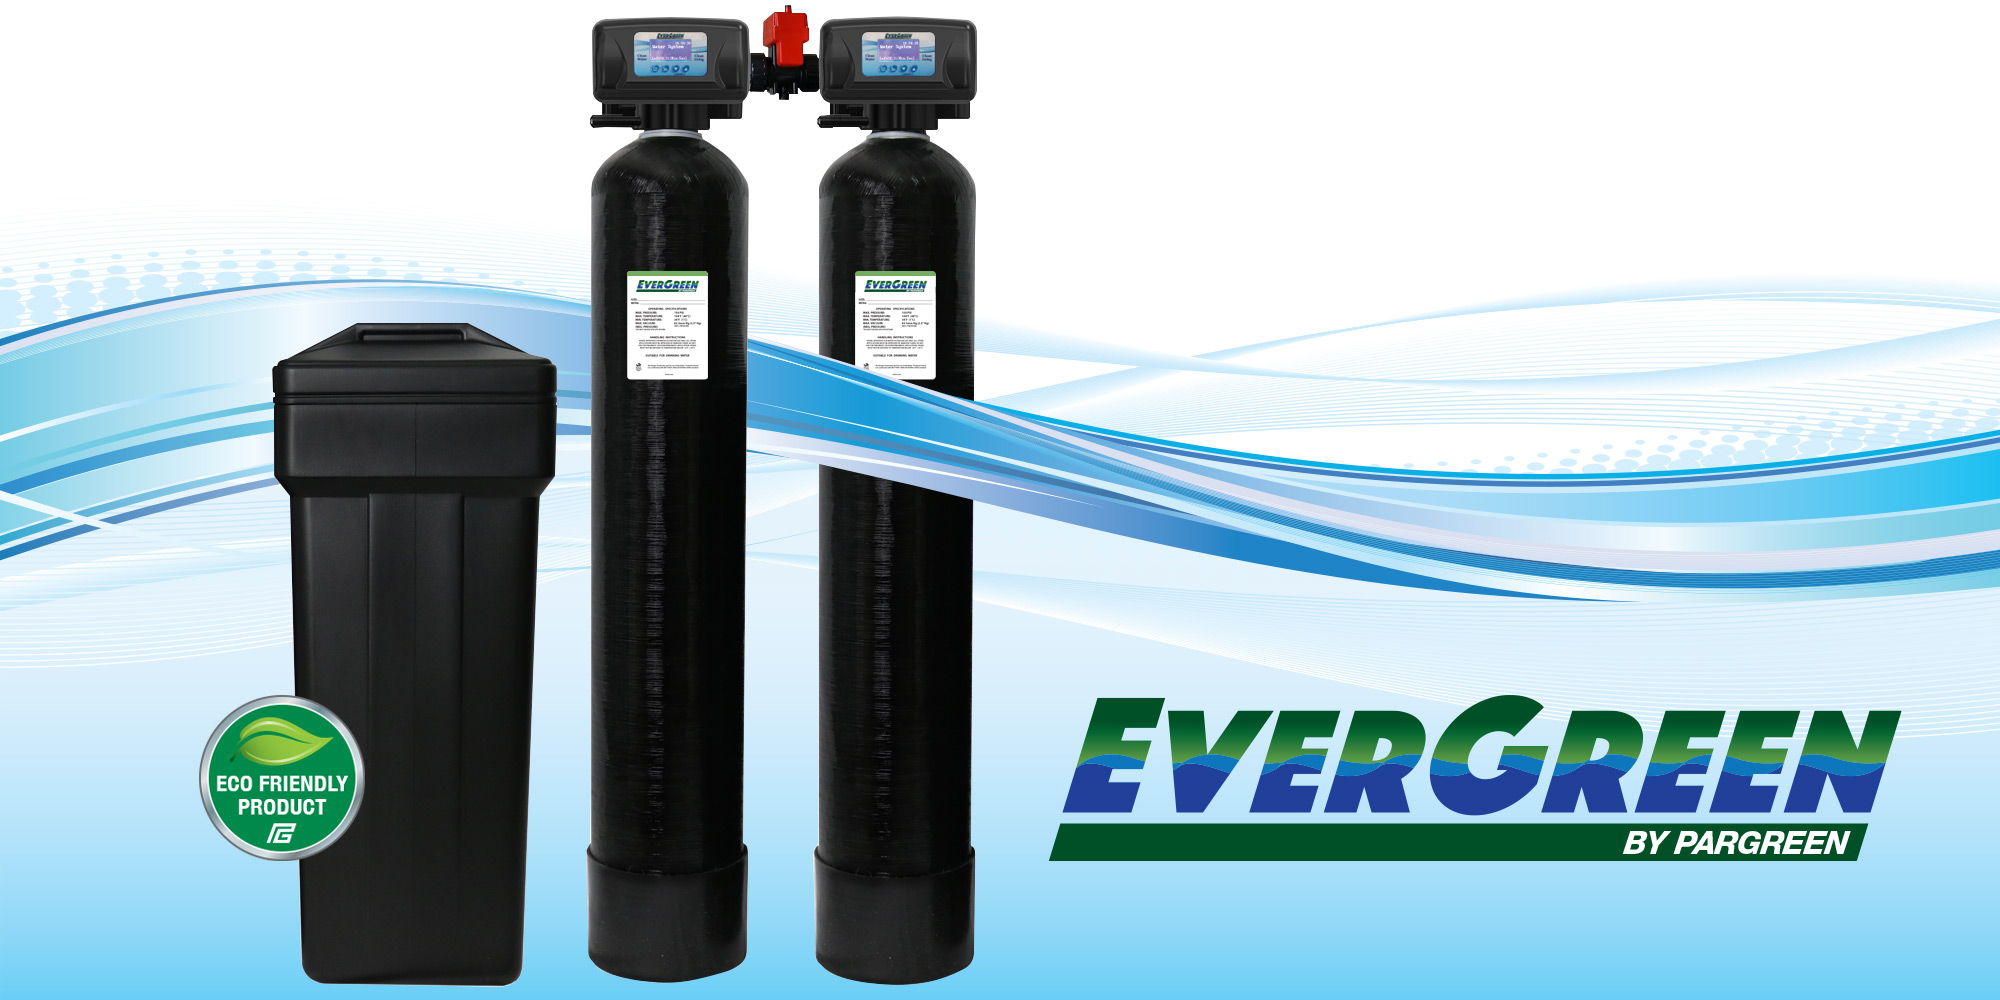 Pargreen EverGreen Water Softener System